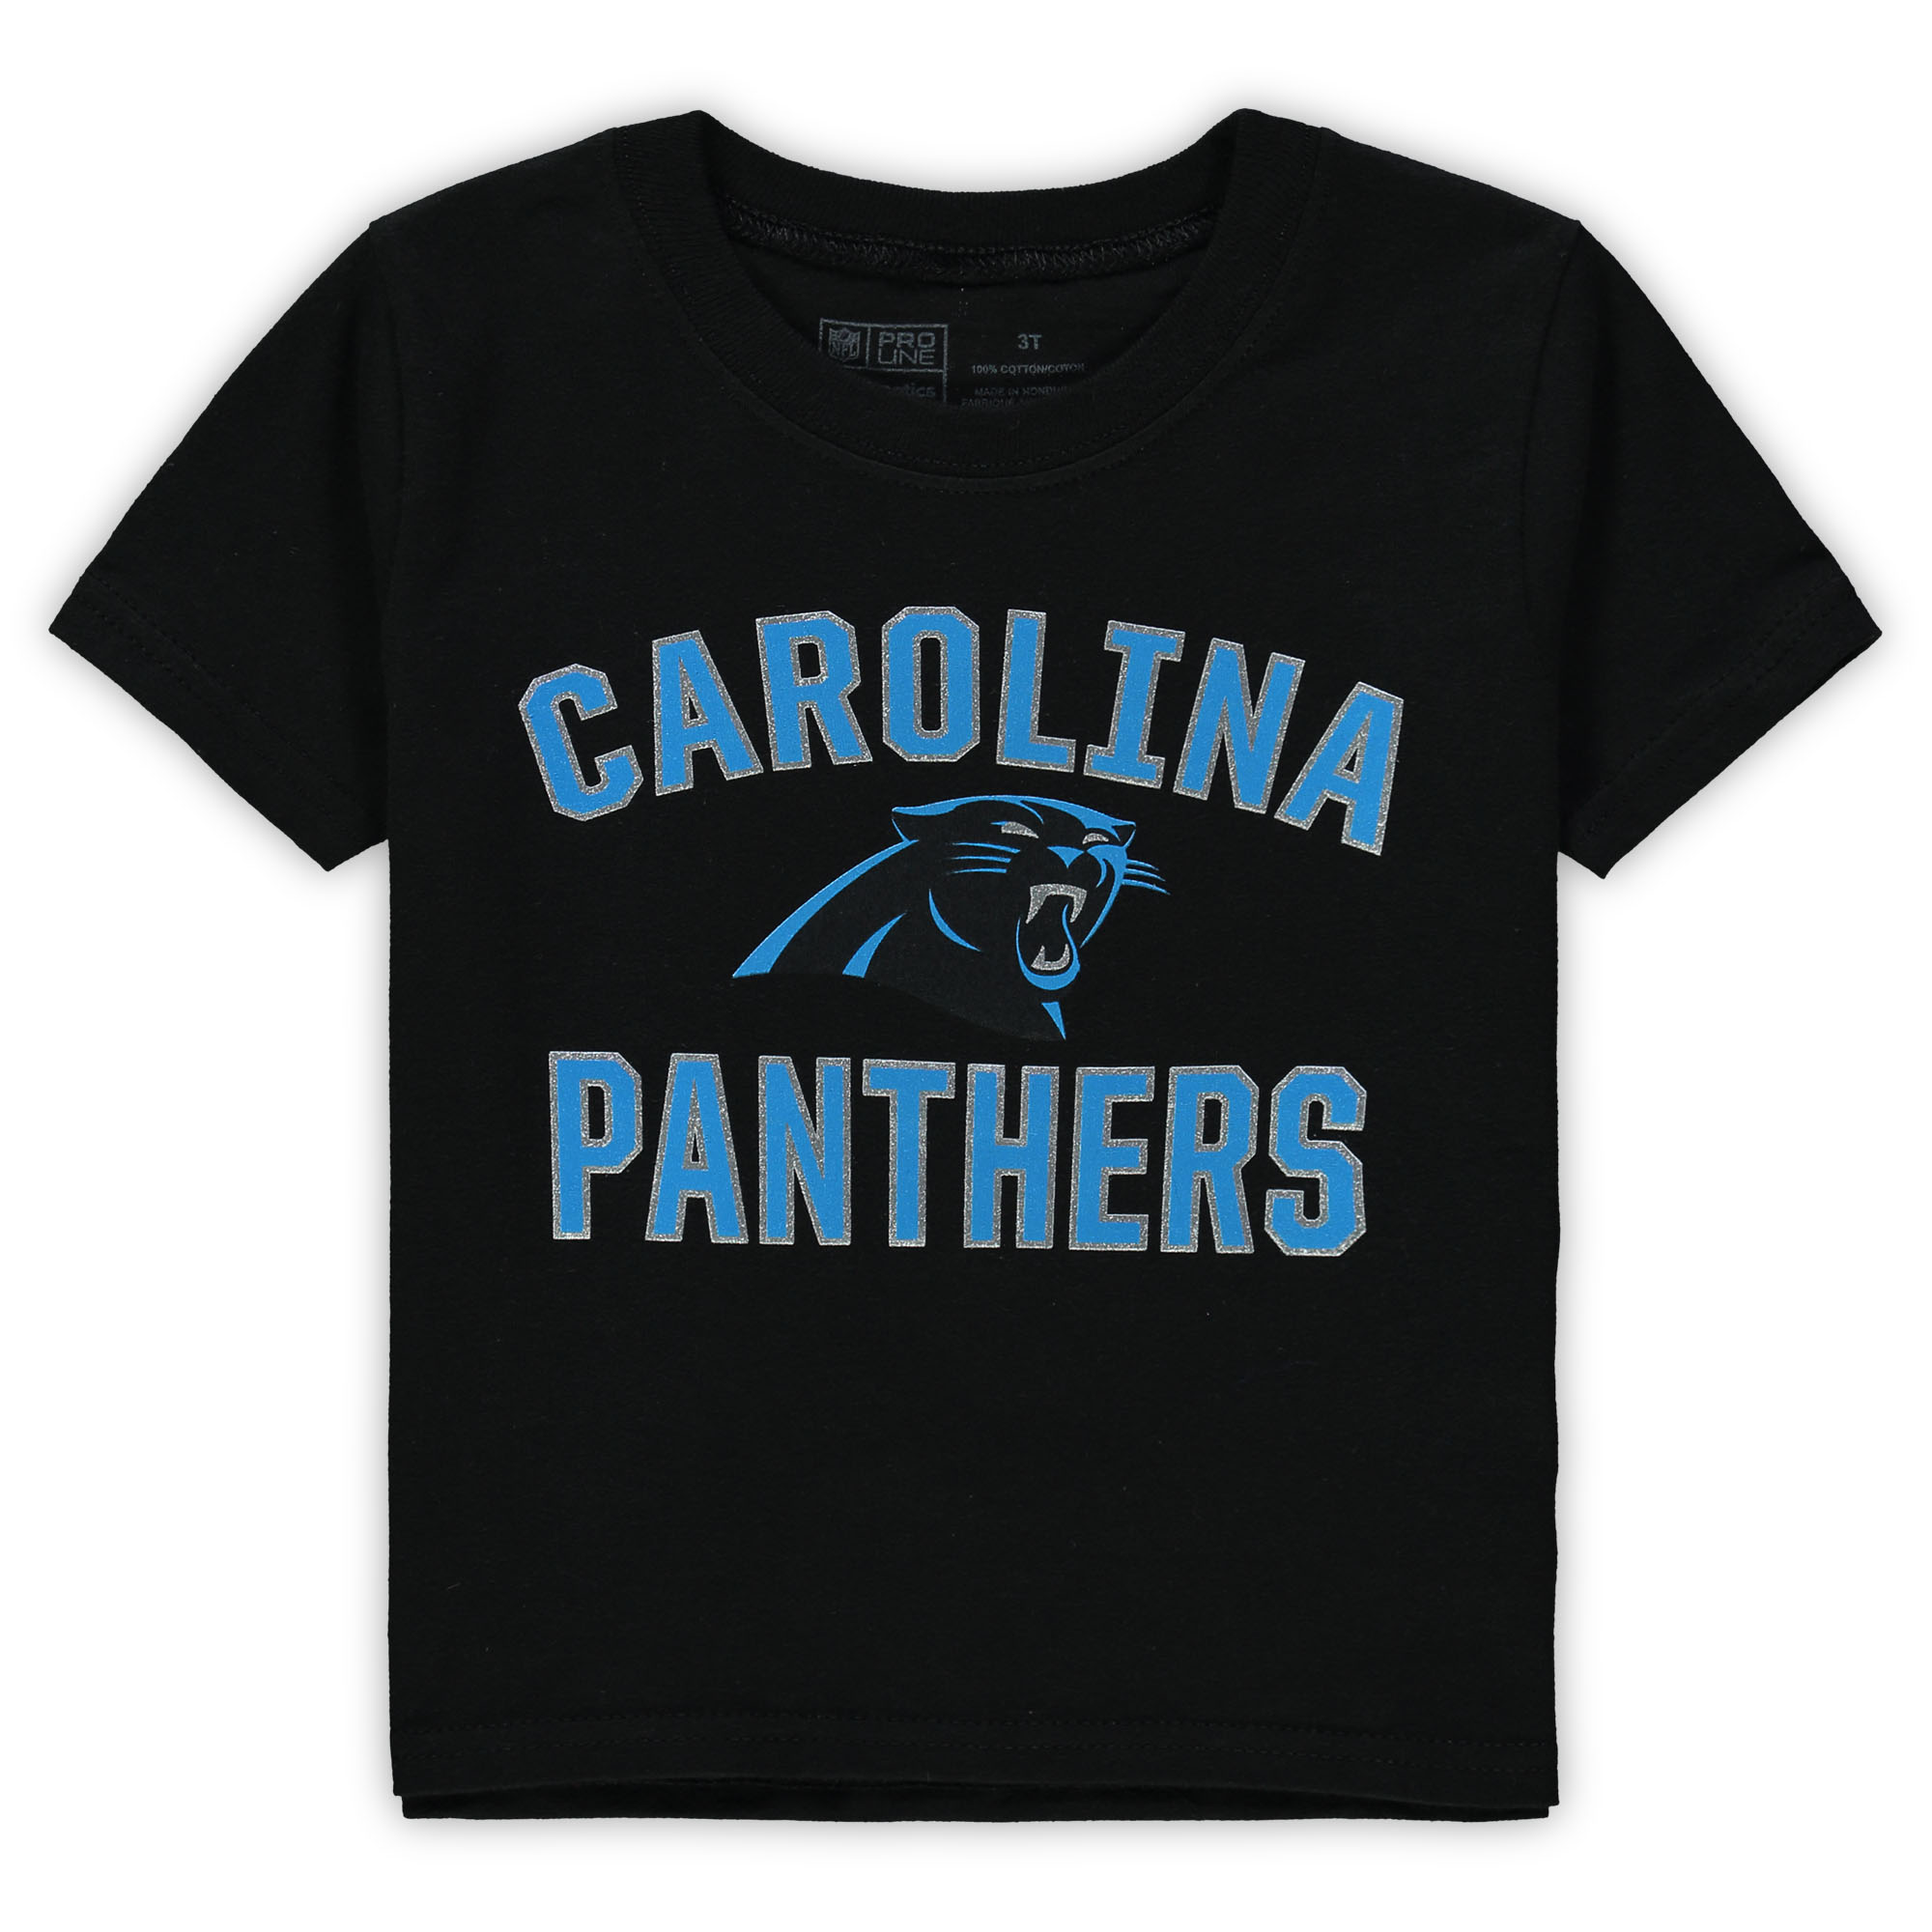 Carolina Panthers NFL Pro Line by Fanatics Branded Toddler Team Victory Arch T-Shirt - Black